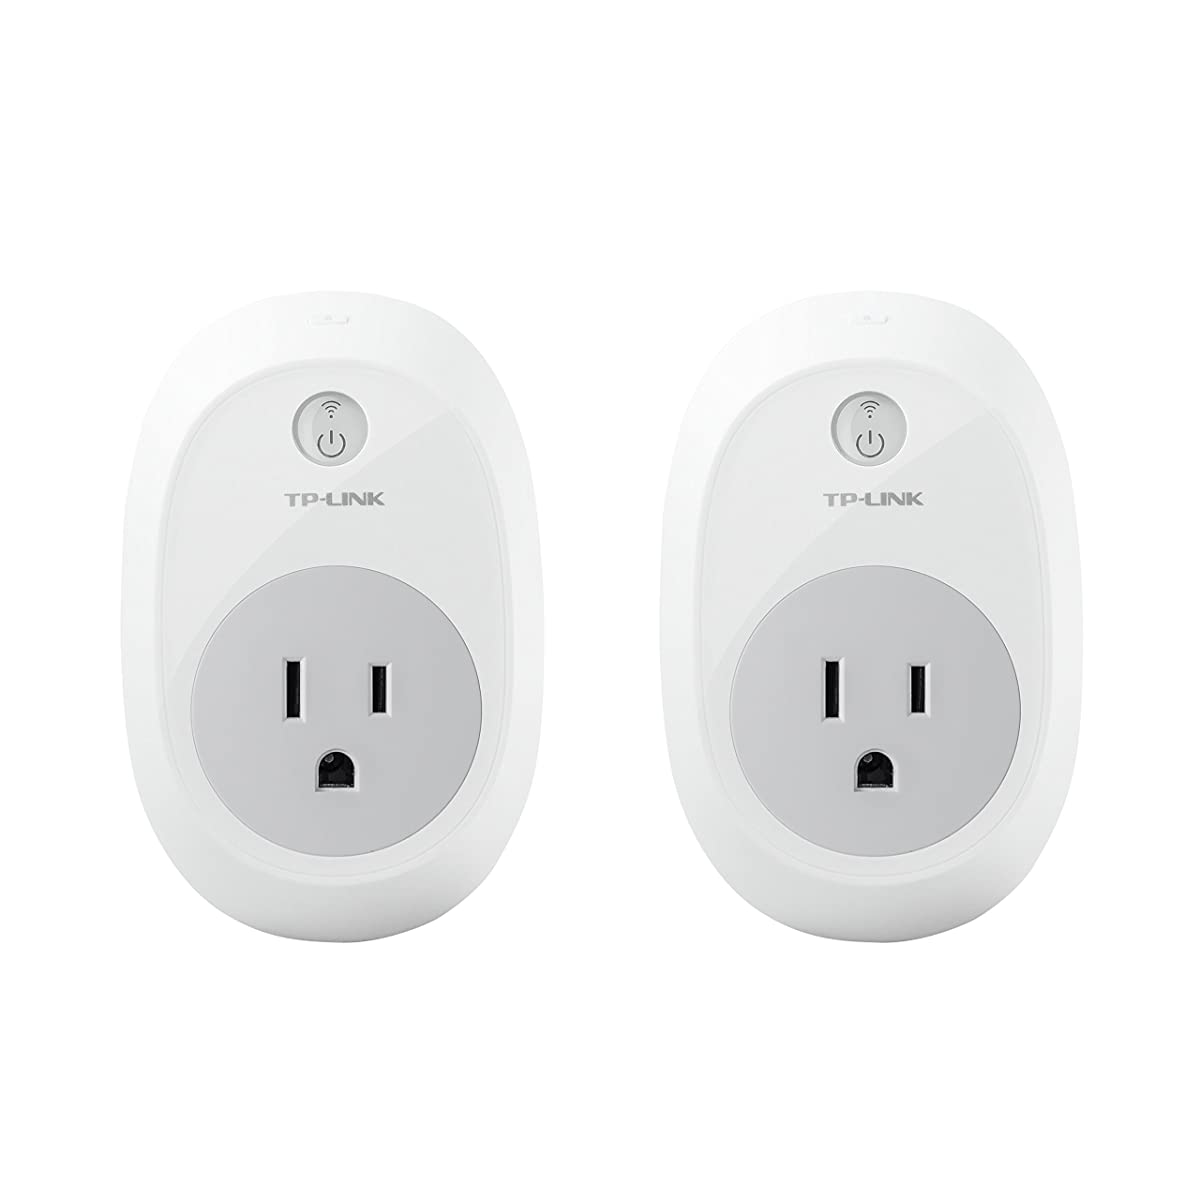 TP-Link HS100 Smart Plug (2-Pack), No Hub Required, Wi-Fi, Works with Alexa, Control Your Devices from anywhere (HS100 KIT)